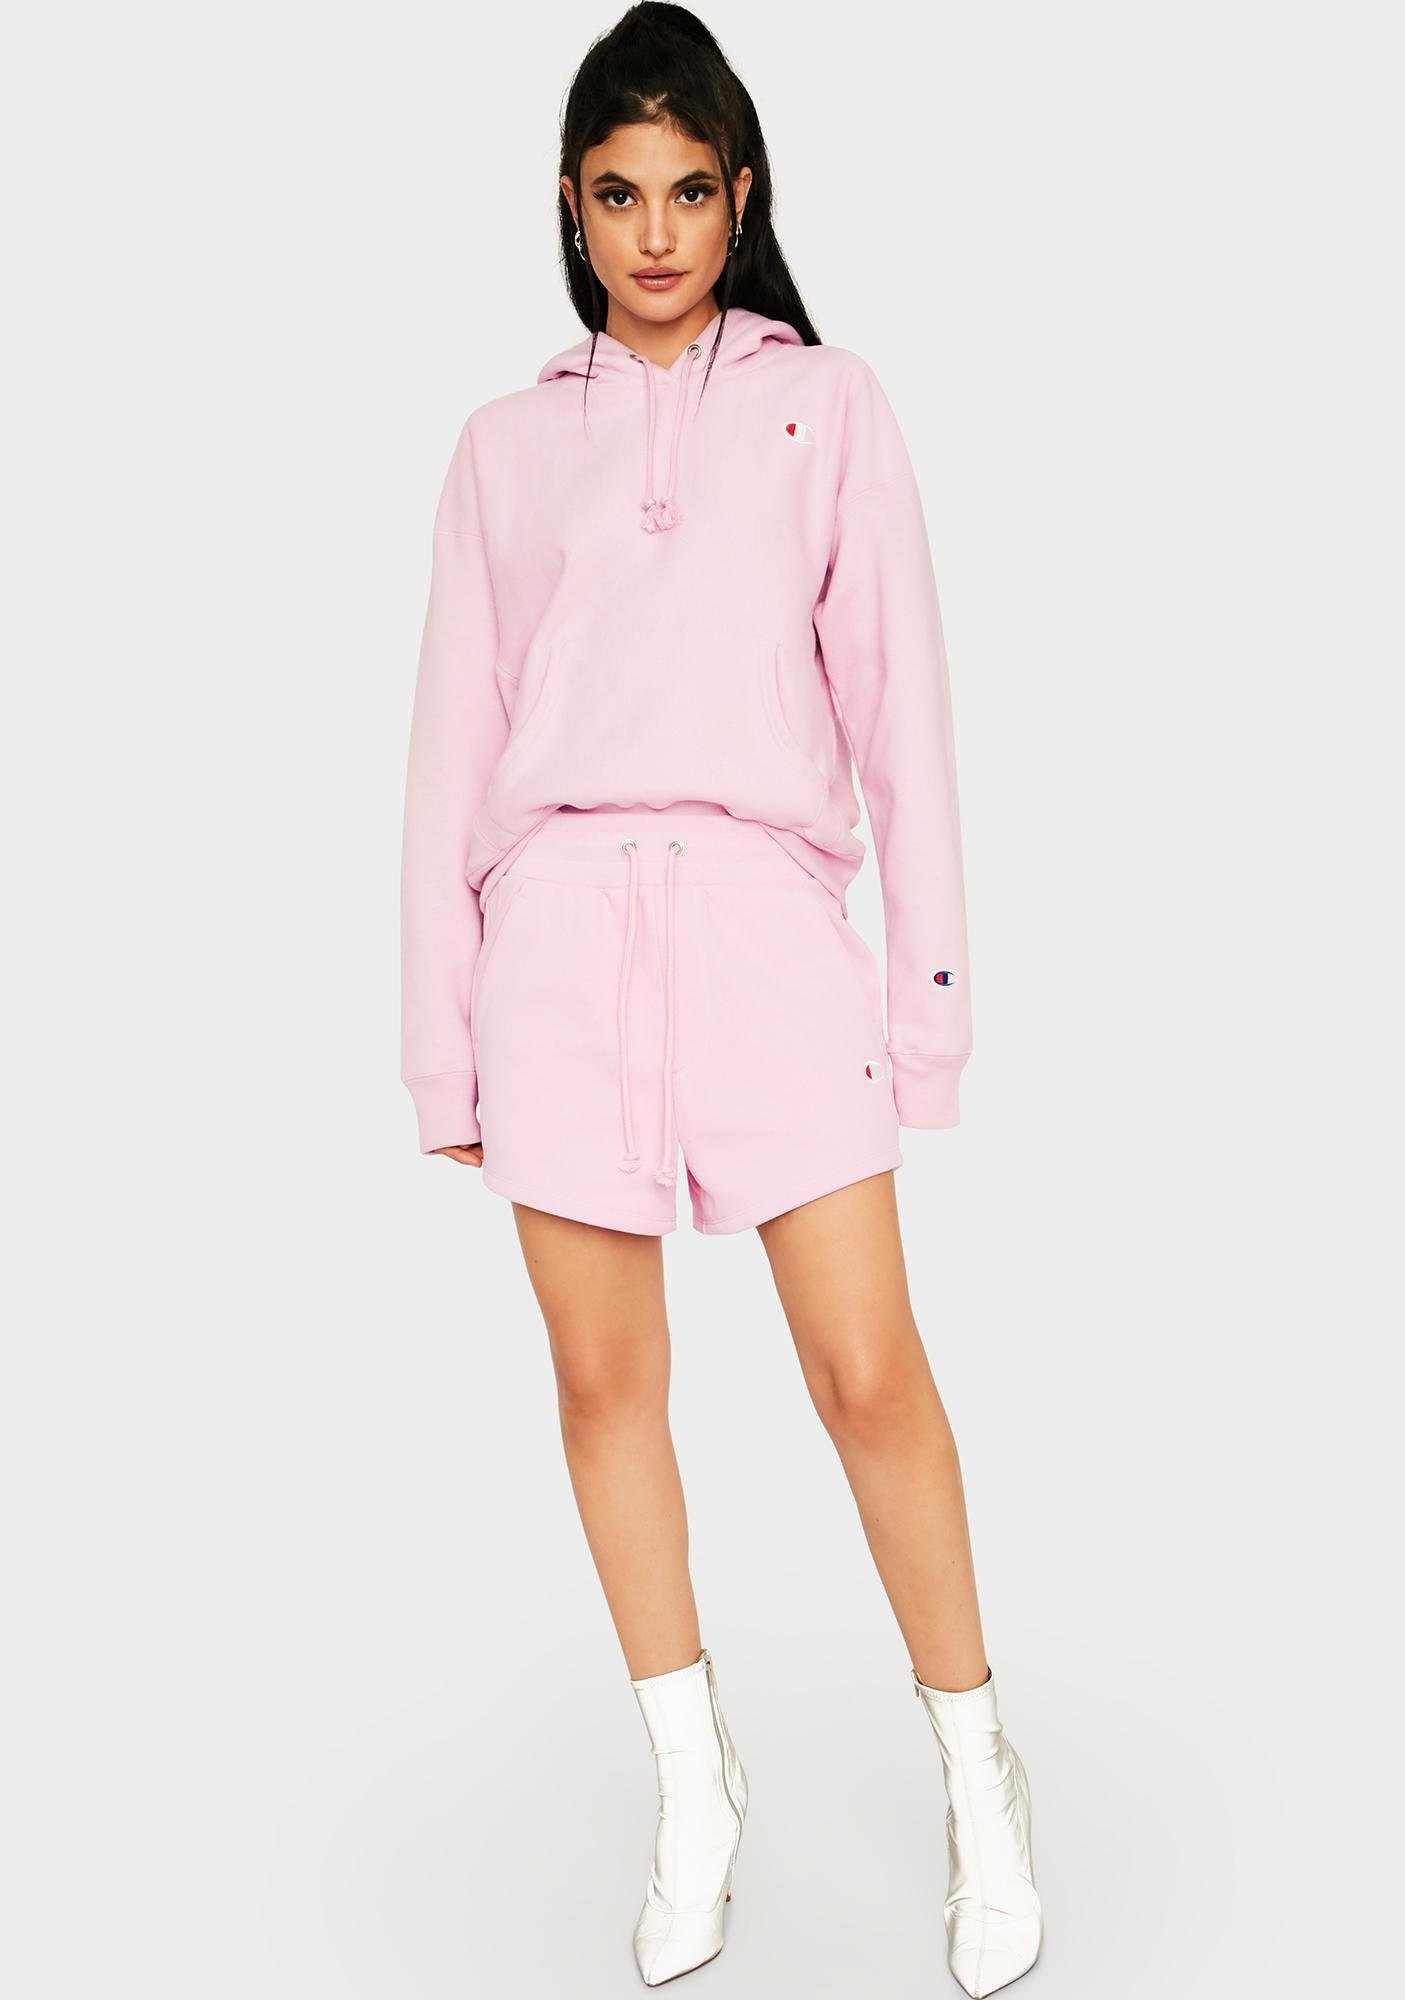 Champion Pink Reverse Weave Pullover Hoodie